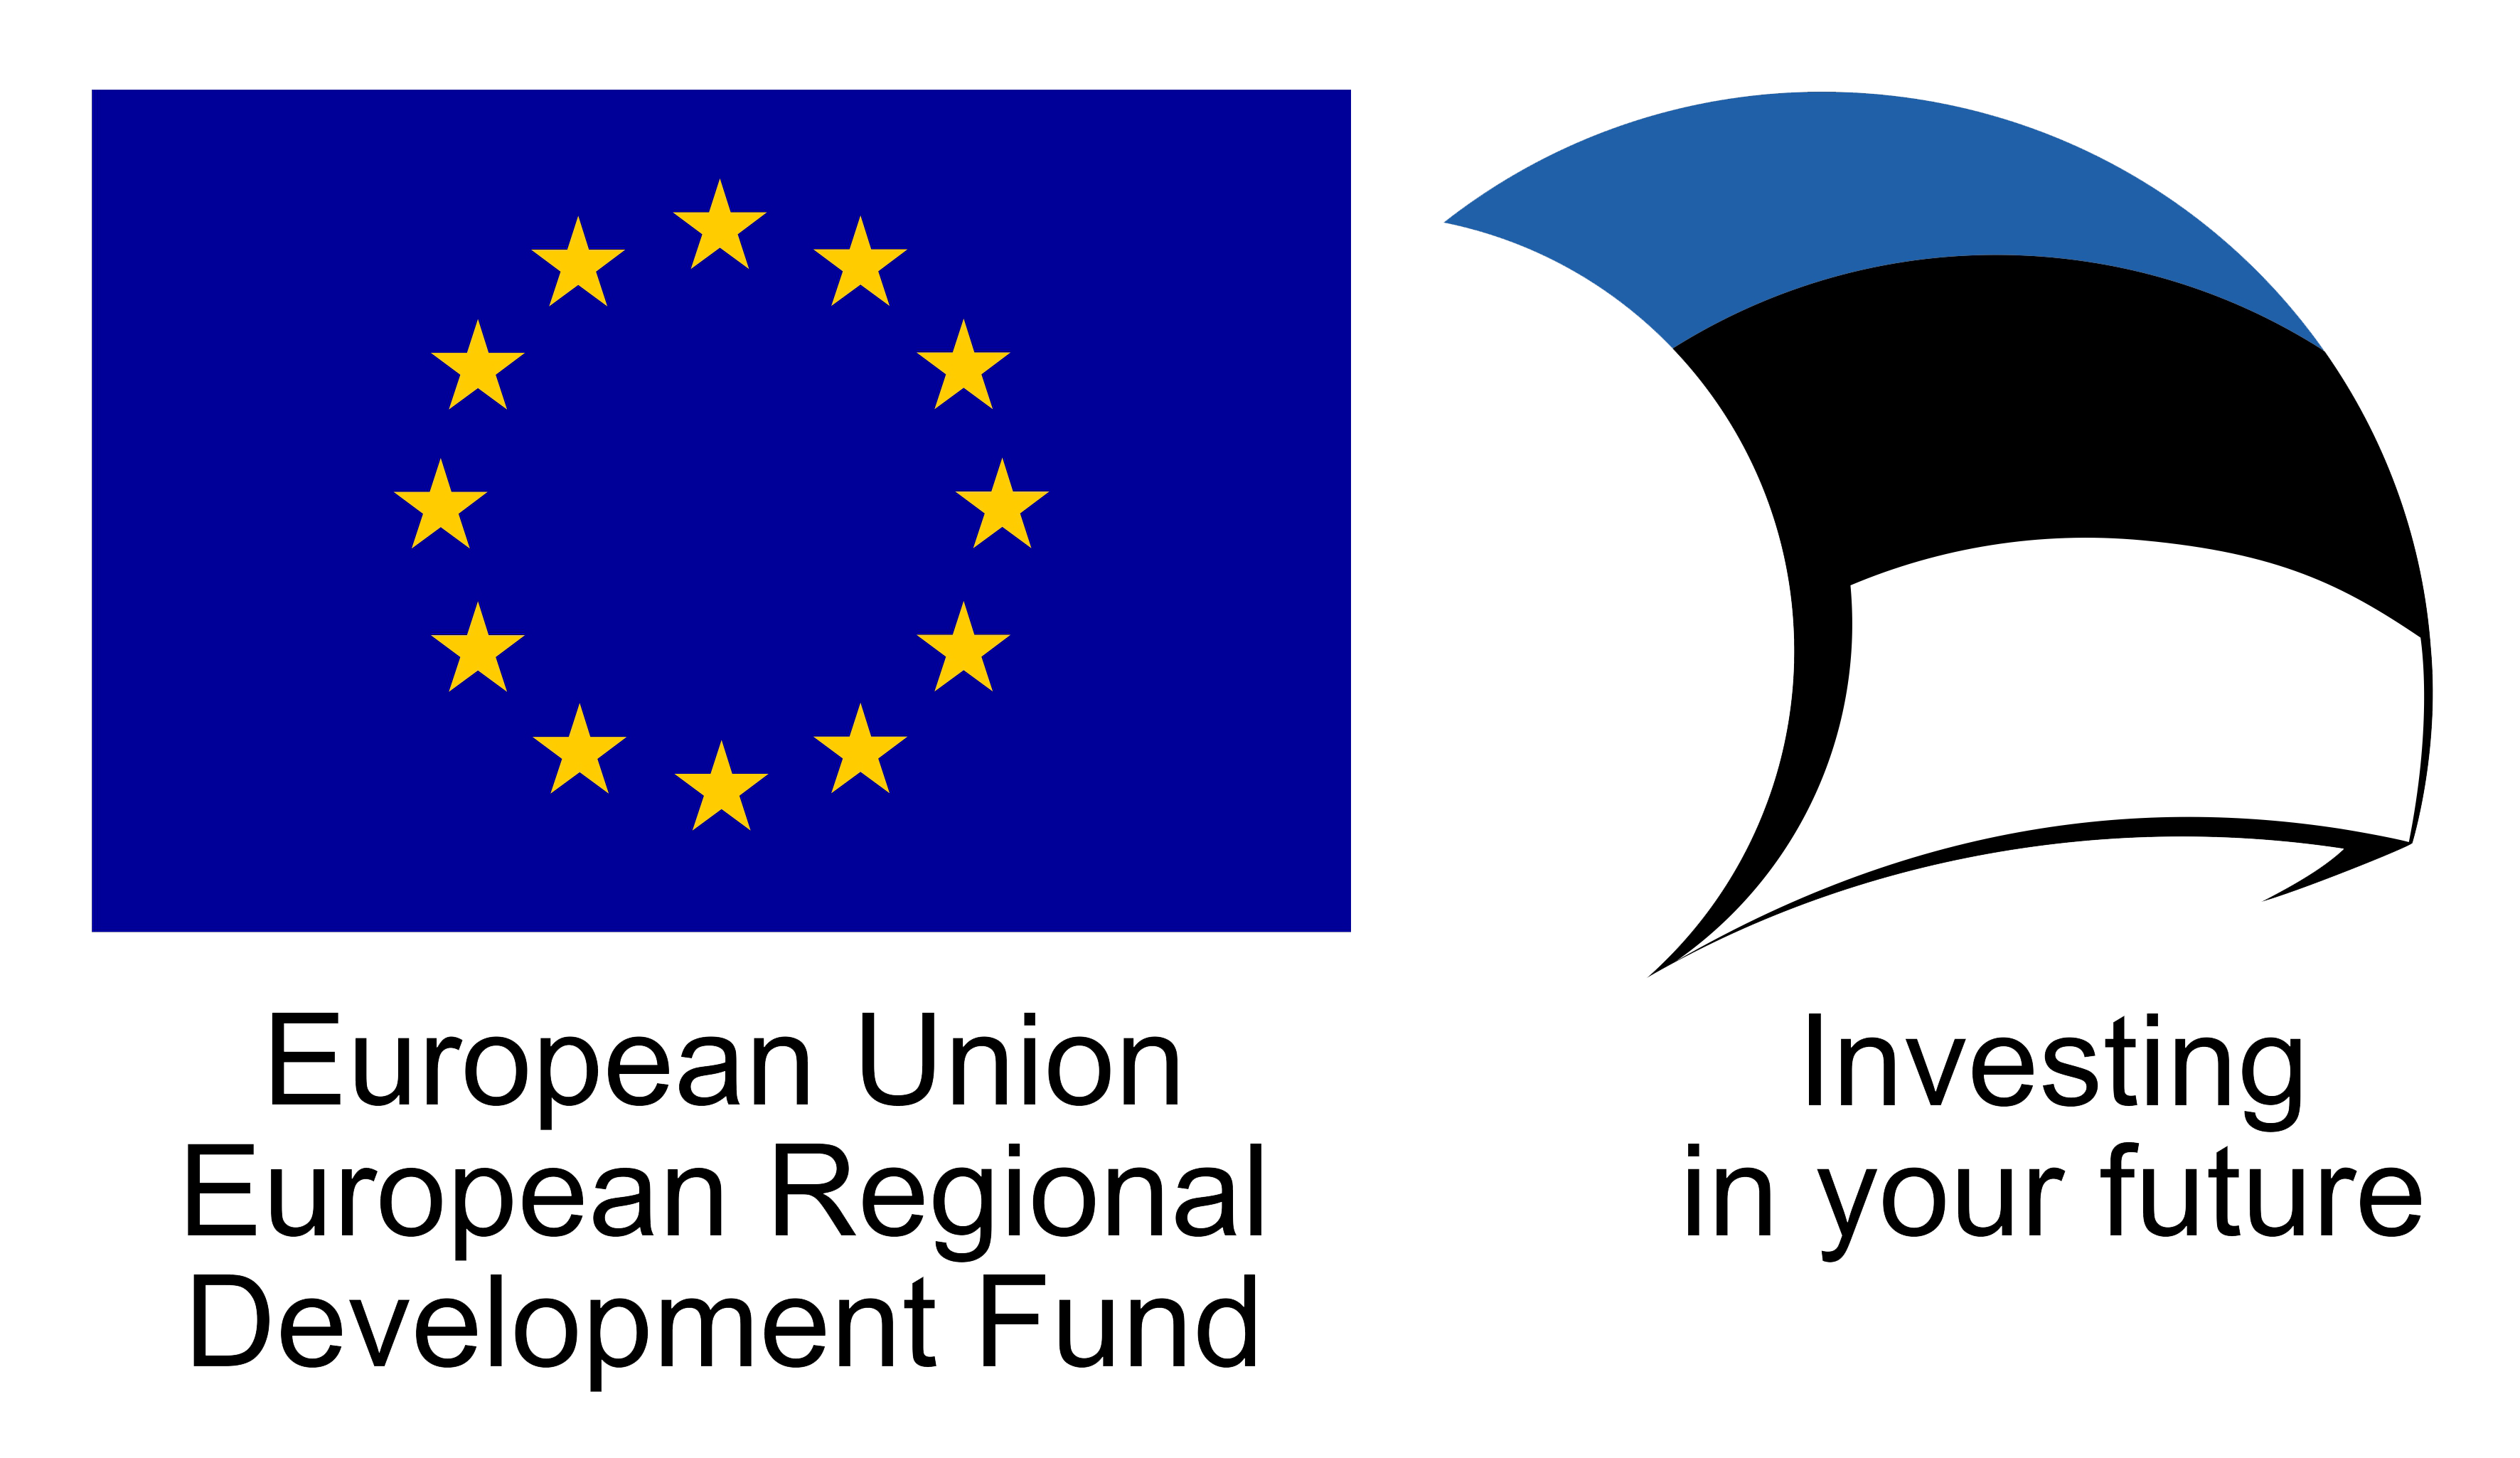 EU Regional development